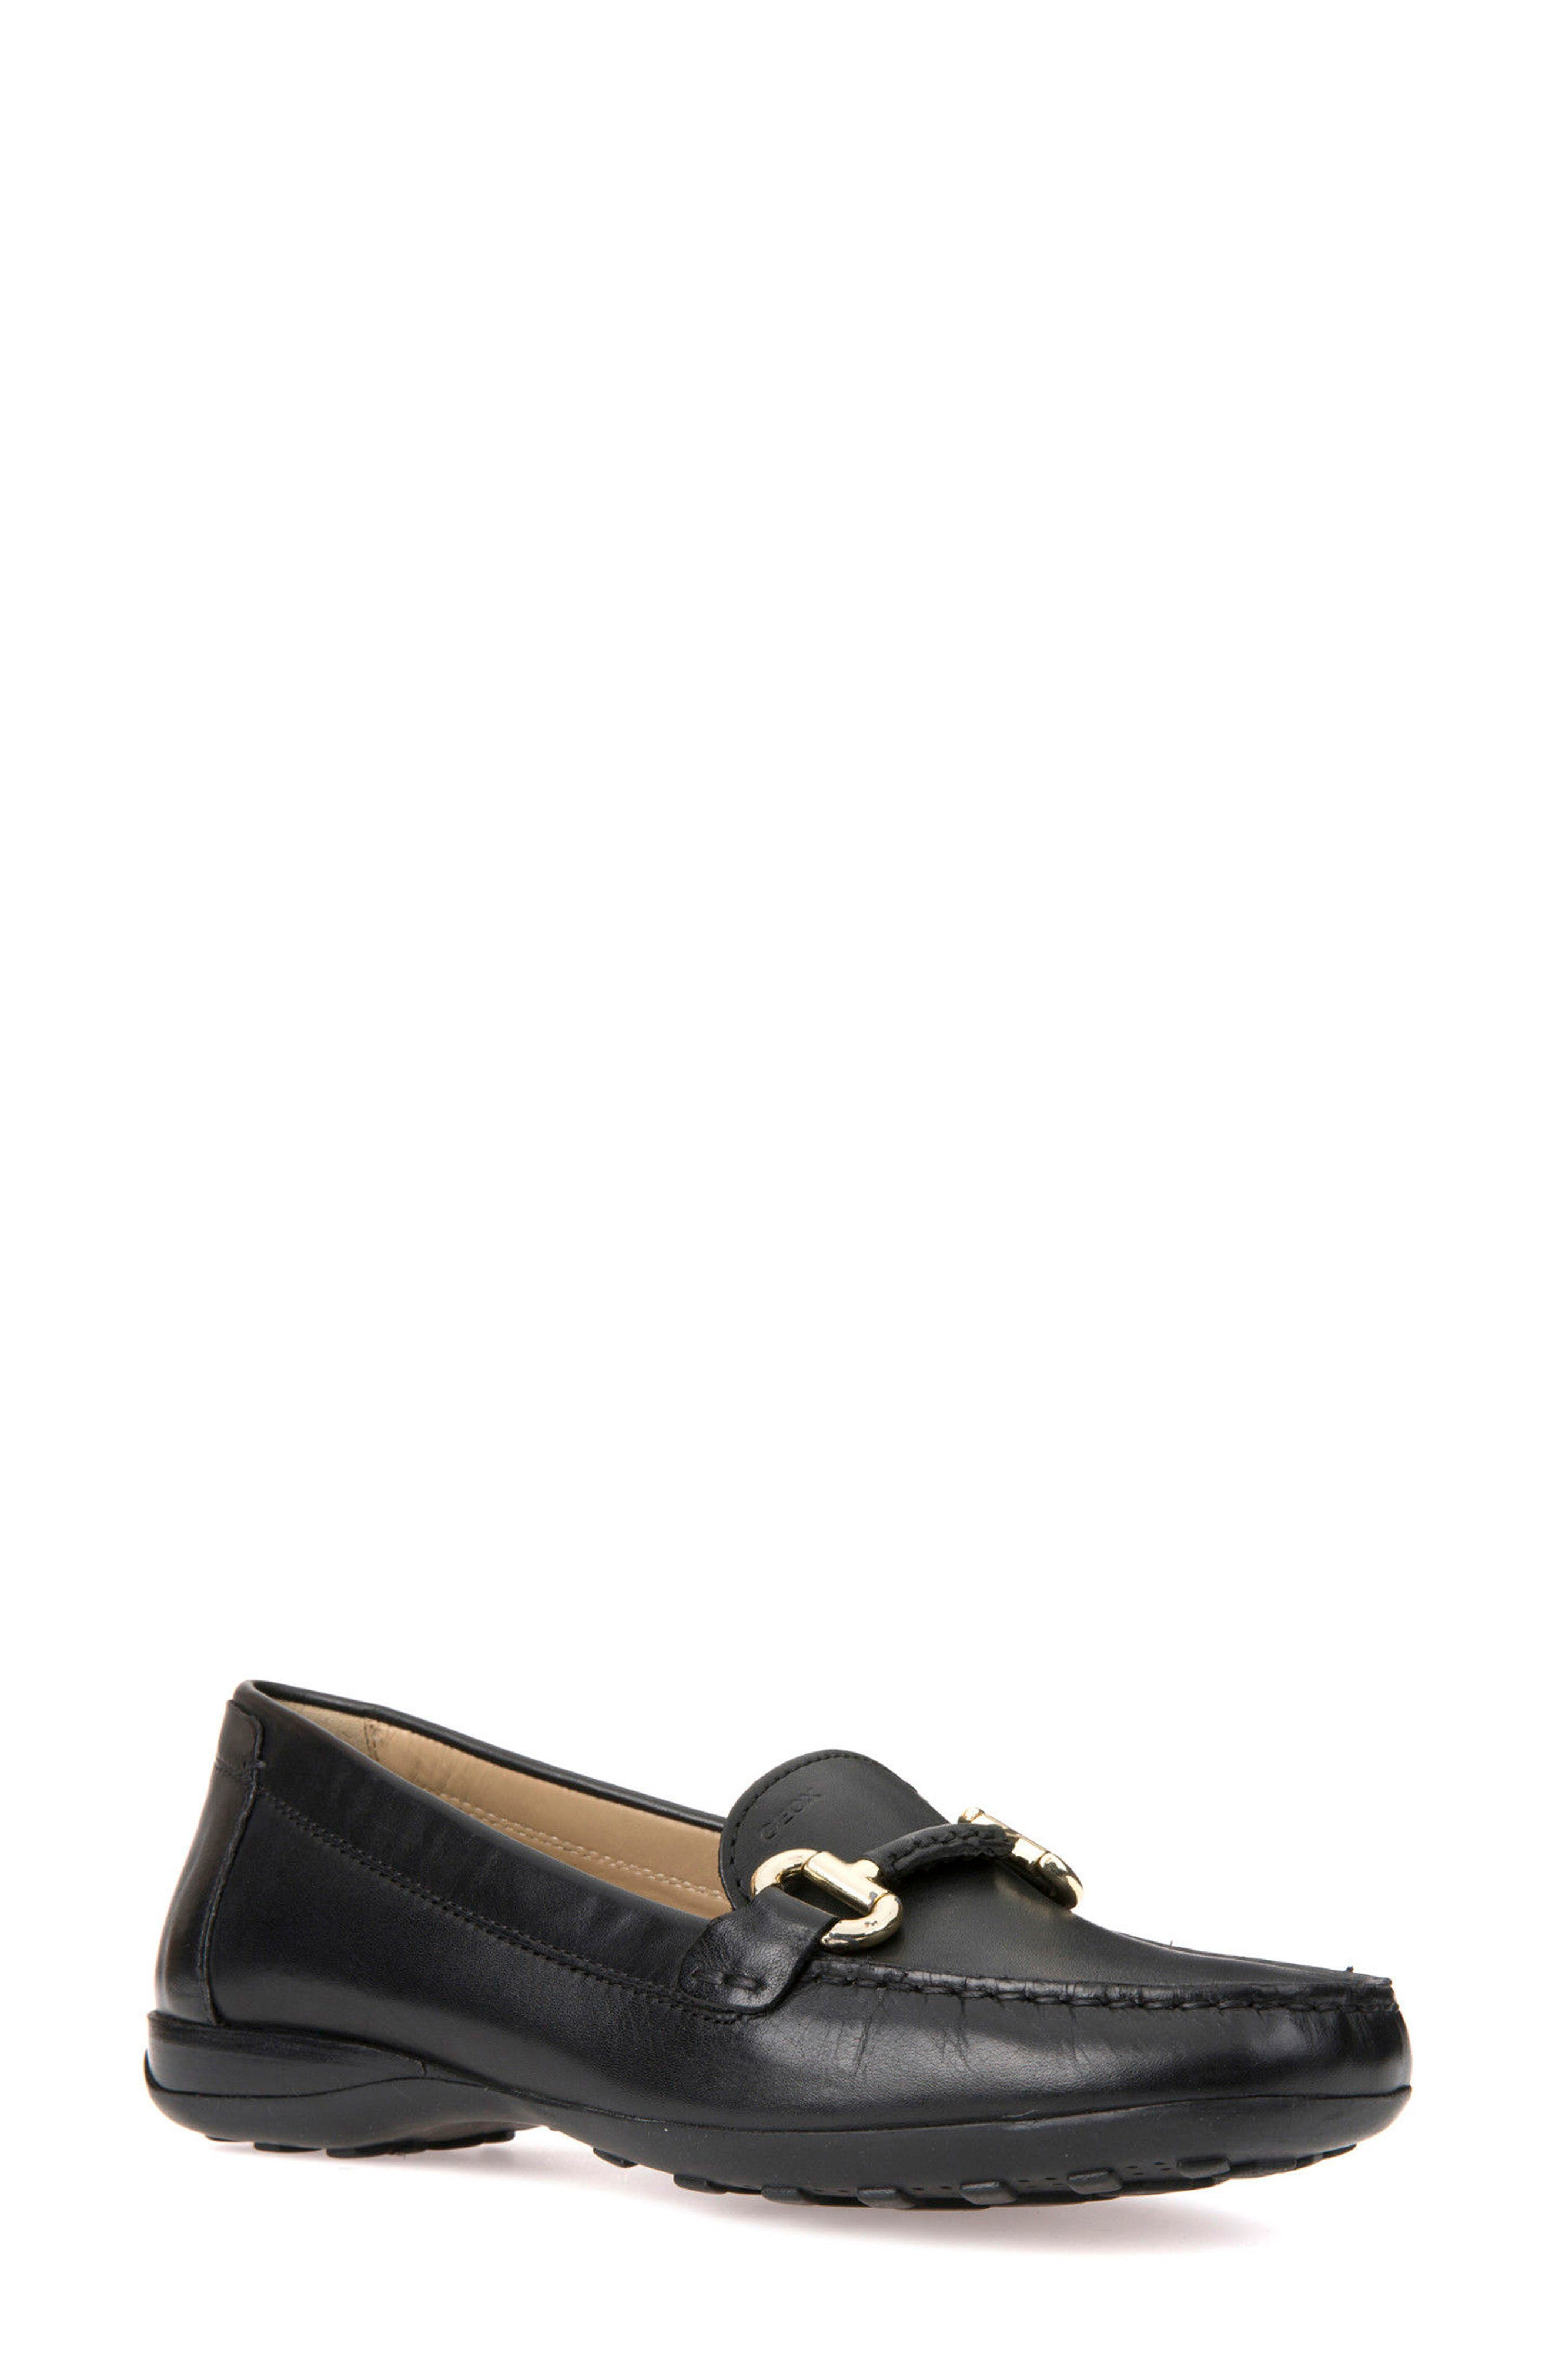 Euro 67 Loafer,                             Main thumbnail 2, color,